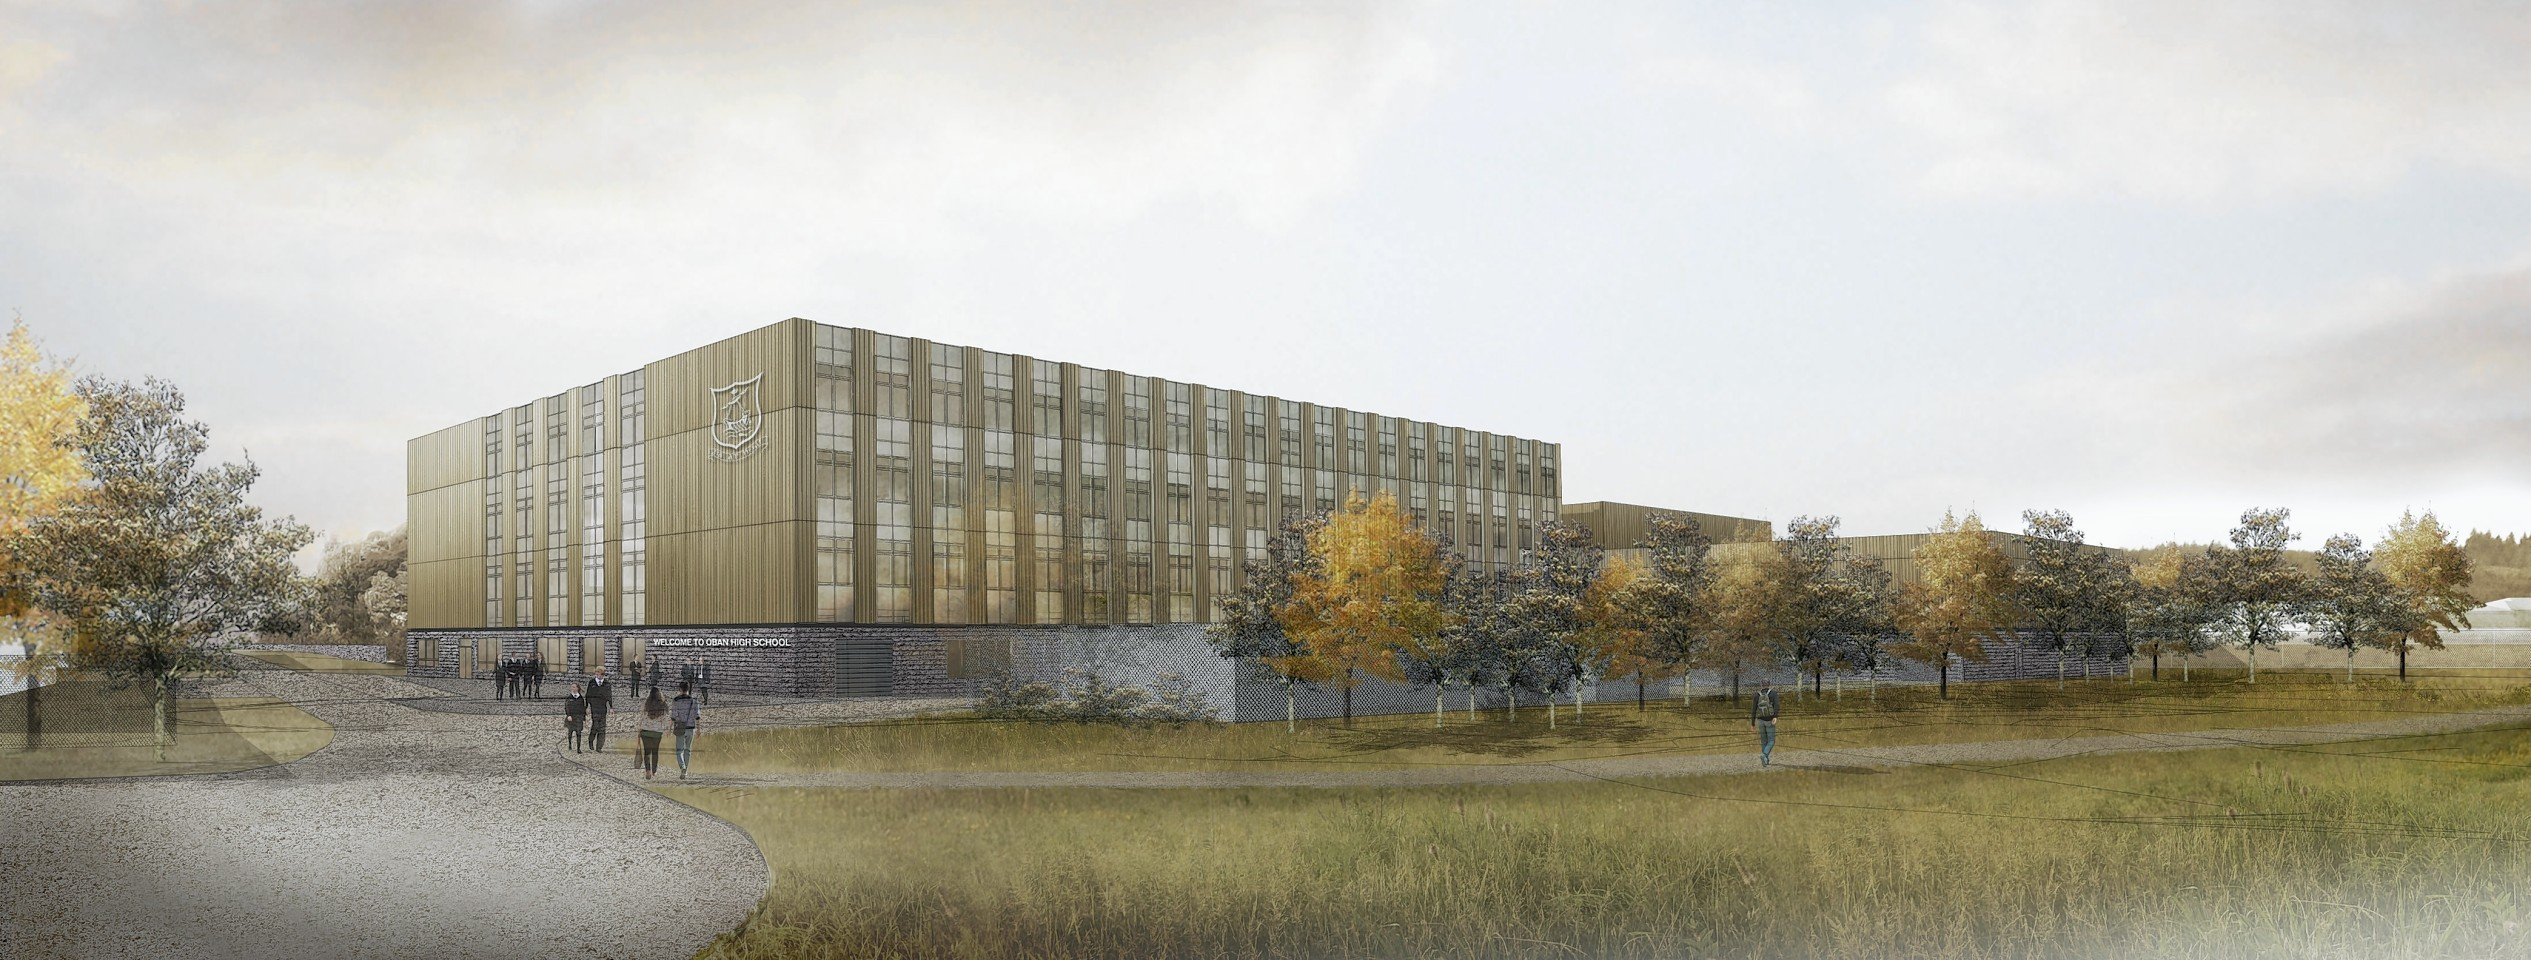 Artist impression of the new Oban High School